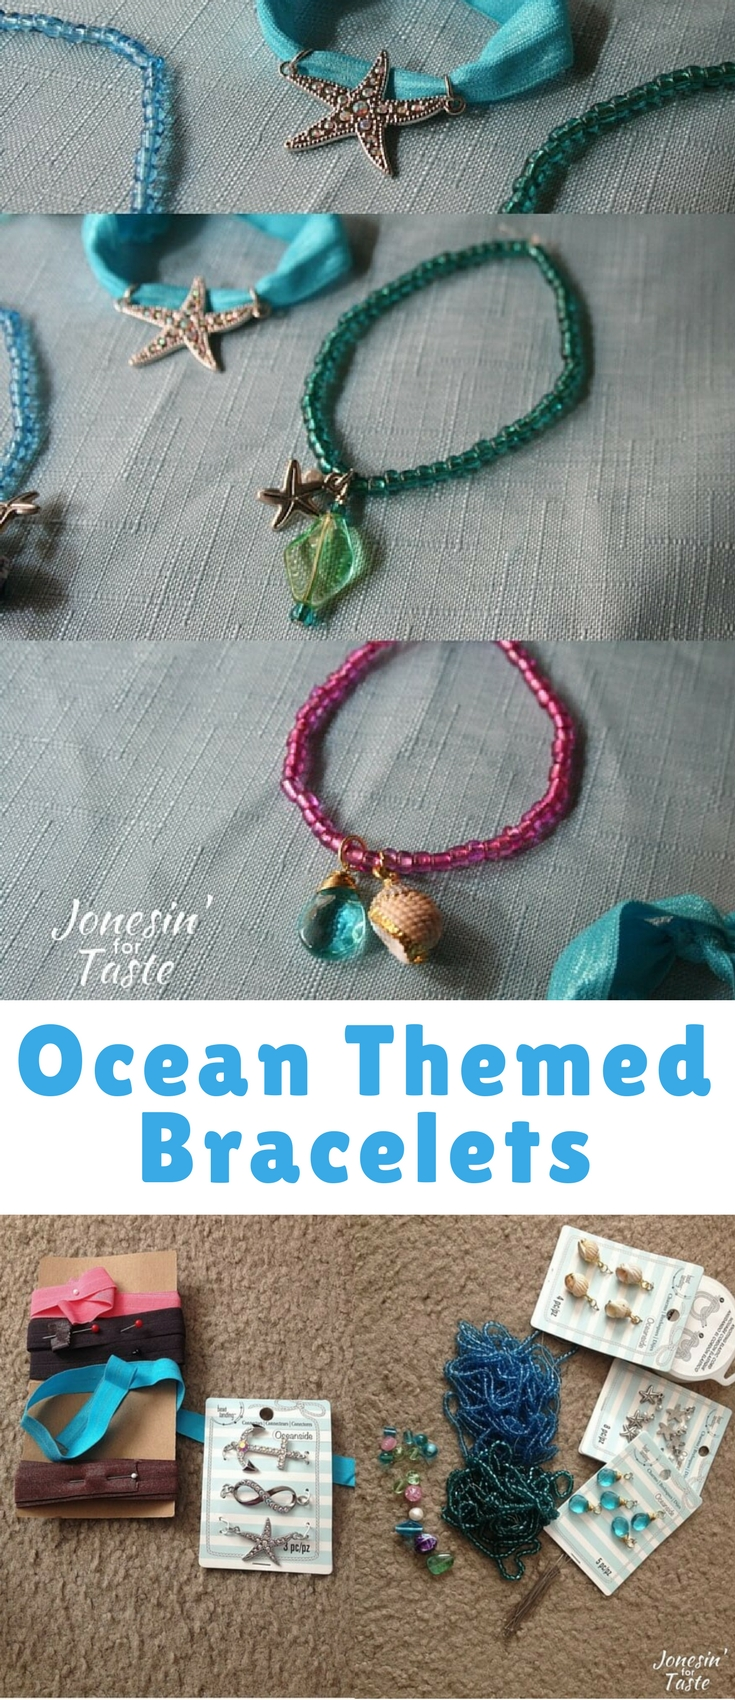 These super simple Ocean Themed Bracelets were simple enough to do with my daughter and fun for me to do as well.